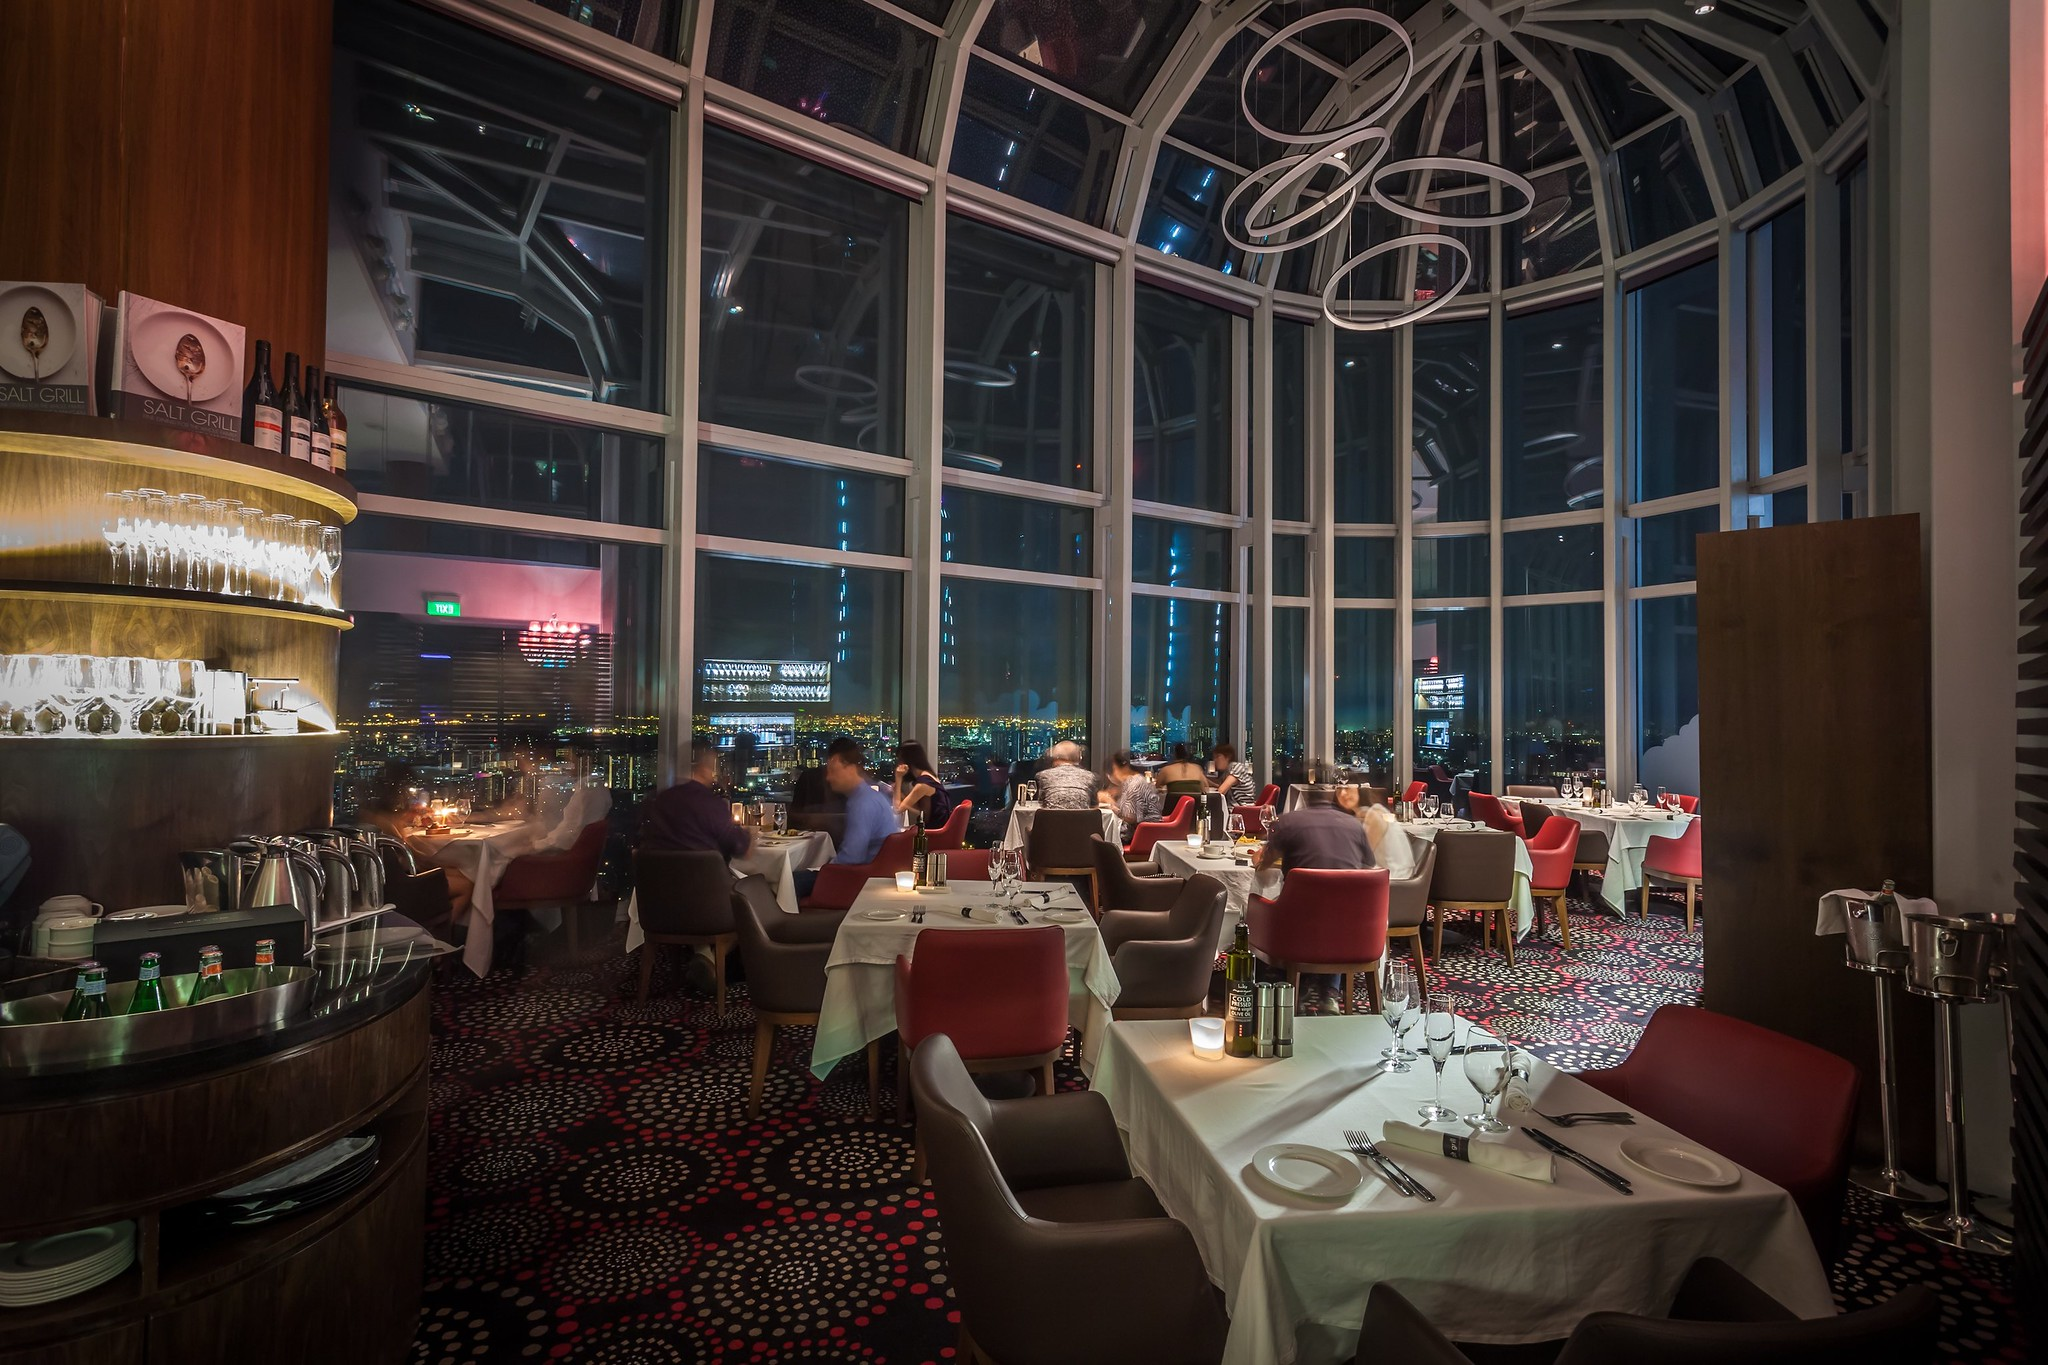 salt grill & sky bar @ ion orchard